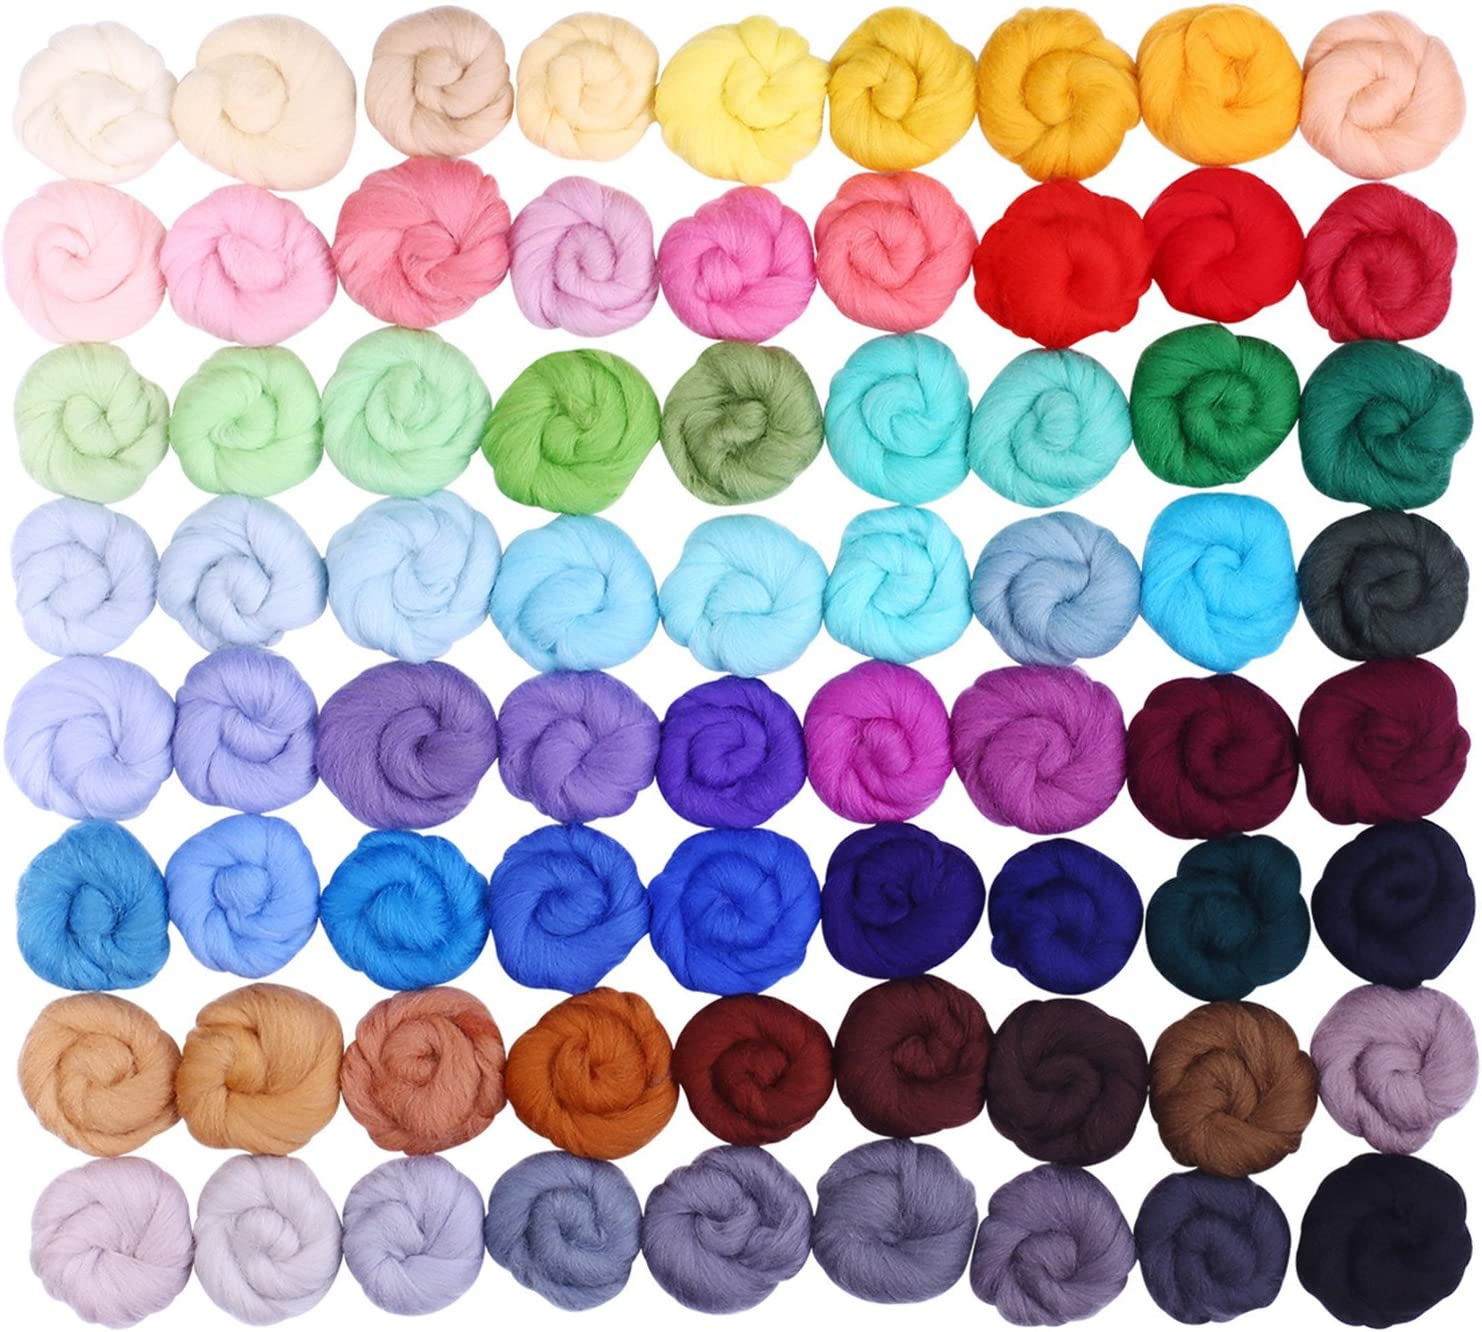 Fuyit Wool Roving 36 Colors 180g Needle Felting Wool Fibre Hand Spinning DIY Craft Materials 36 Color 5g//Color